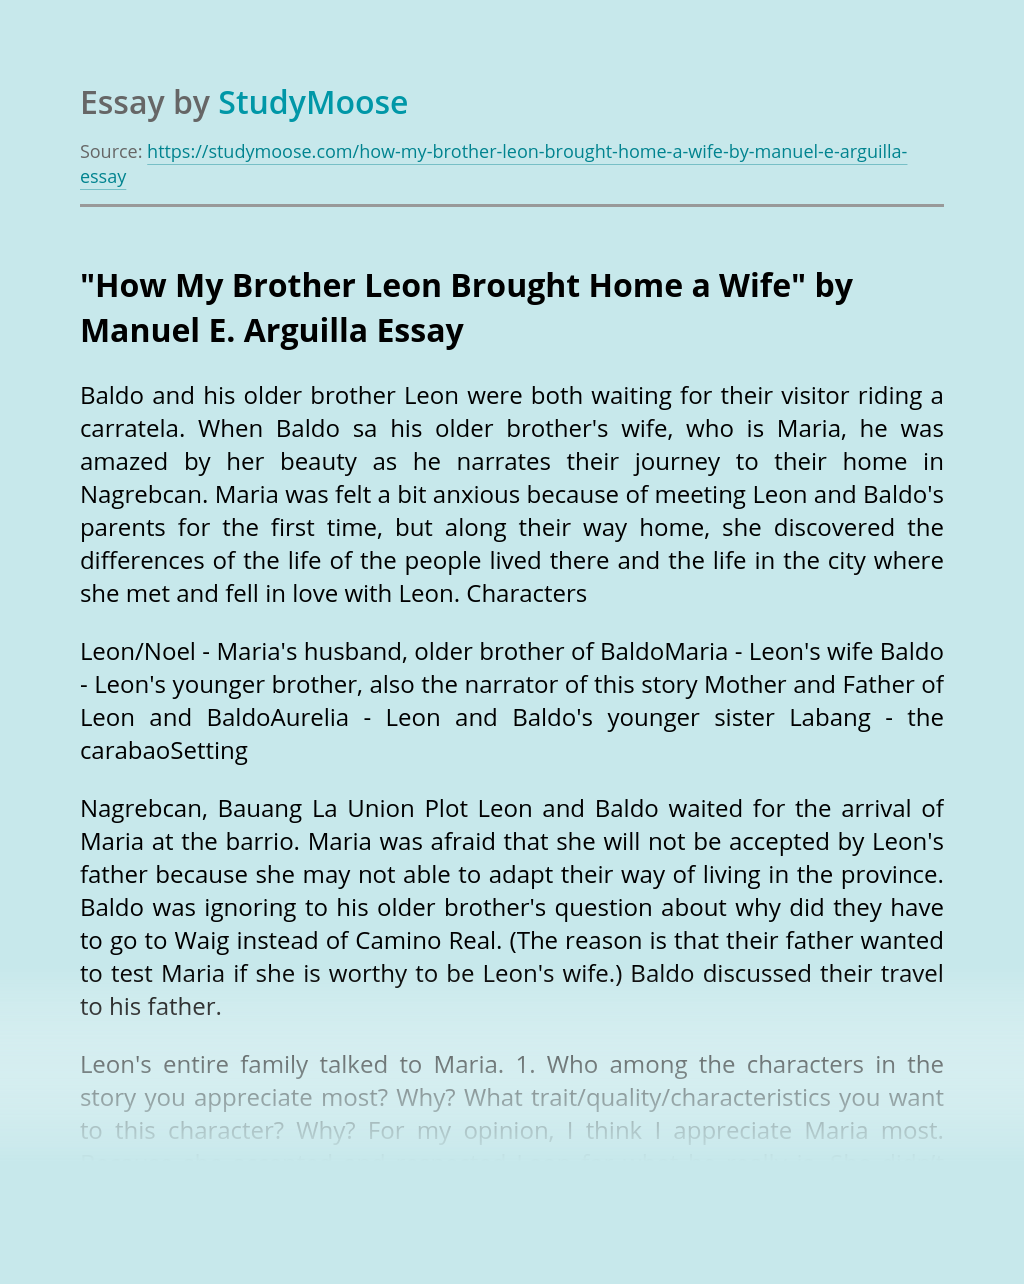 """How My Brother Leon Brought Home a Wife"" by Manuel E. Arguilla"